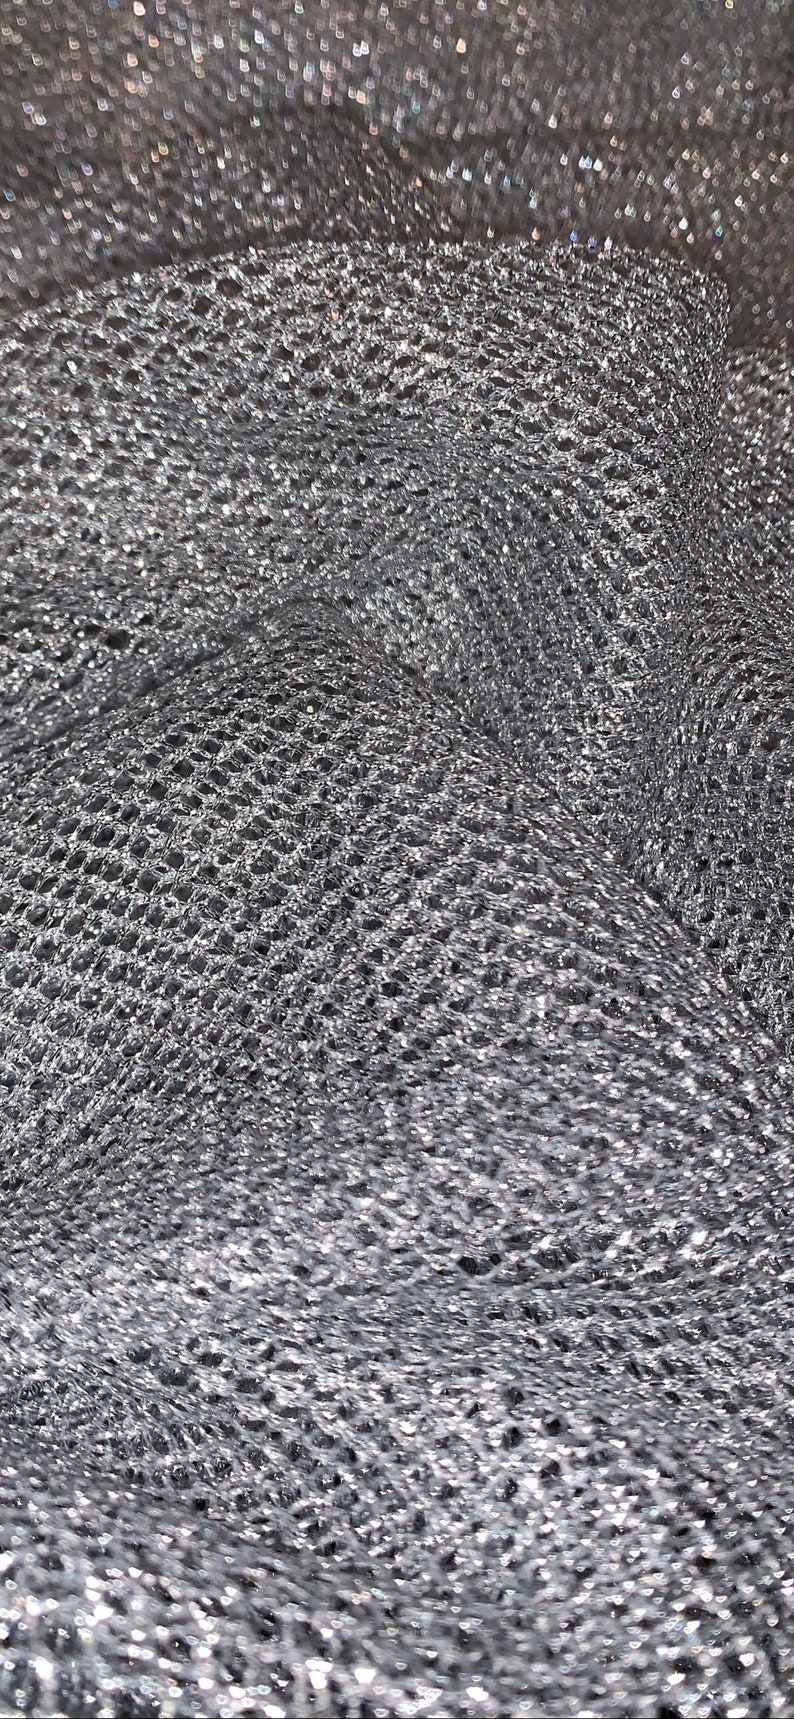 Silver Fishnet Chainmail Mesh Net Fabric 45 Price Per Meter